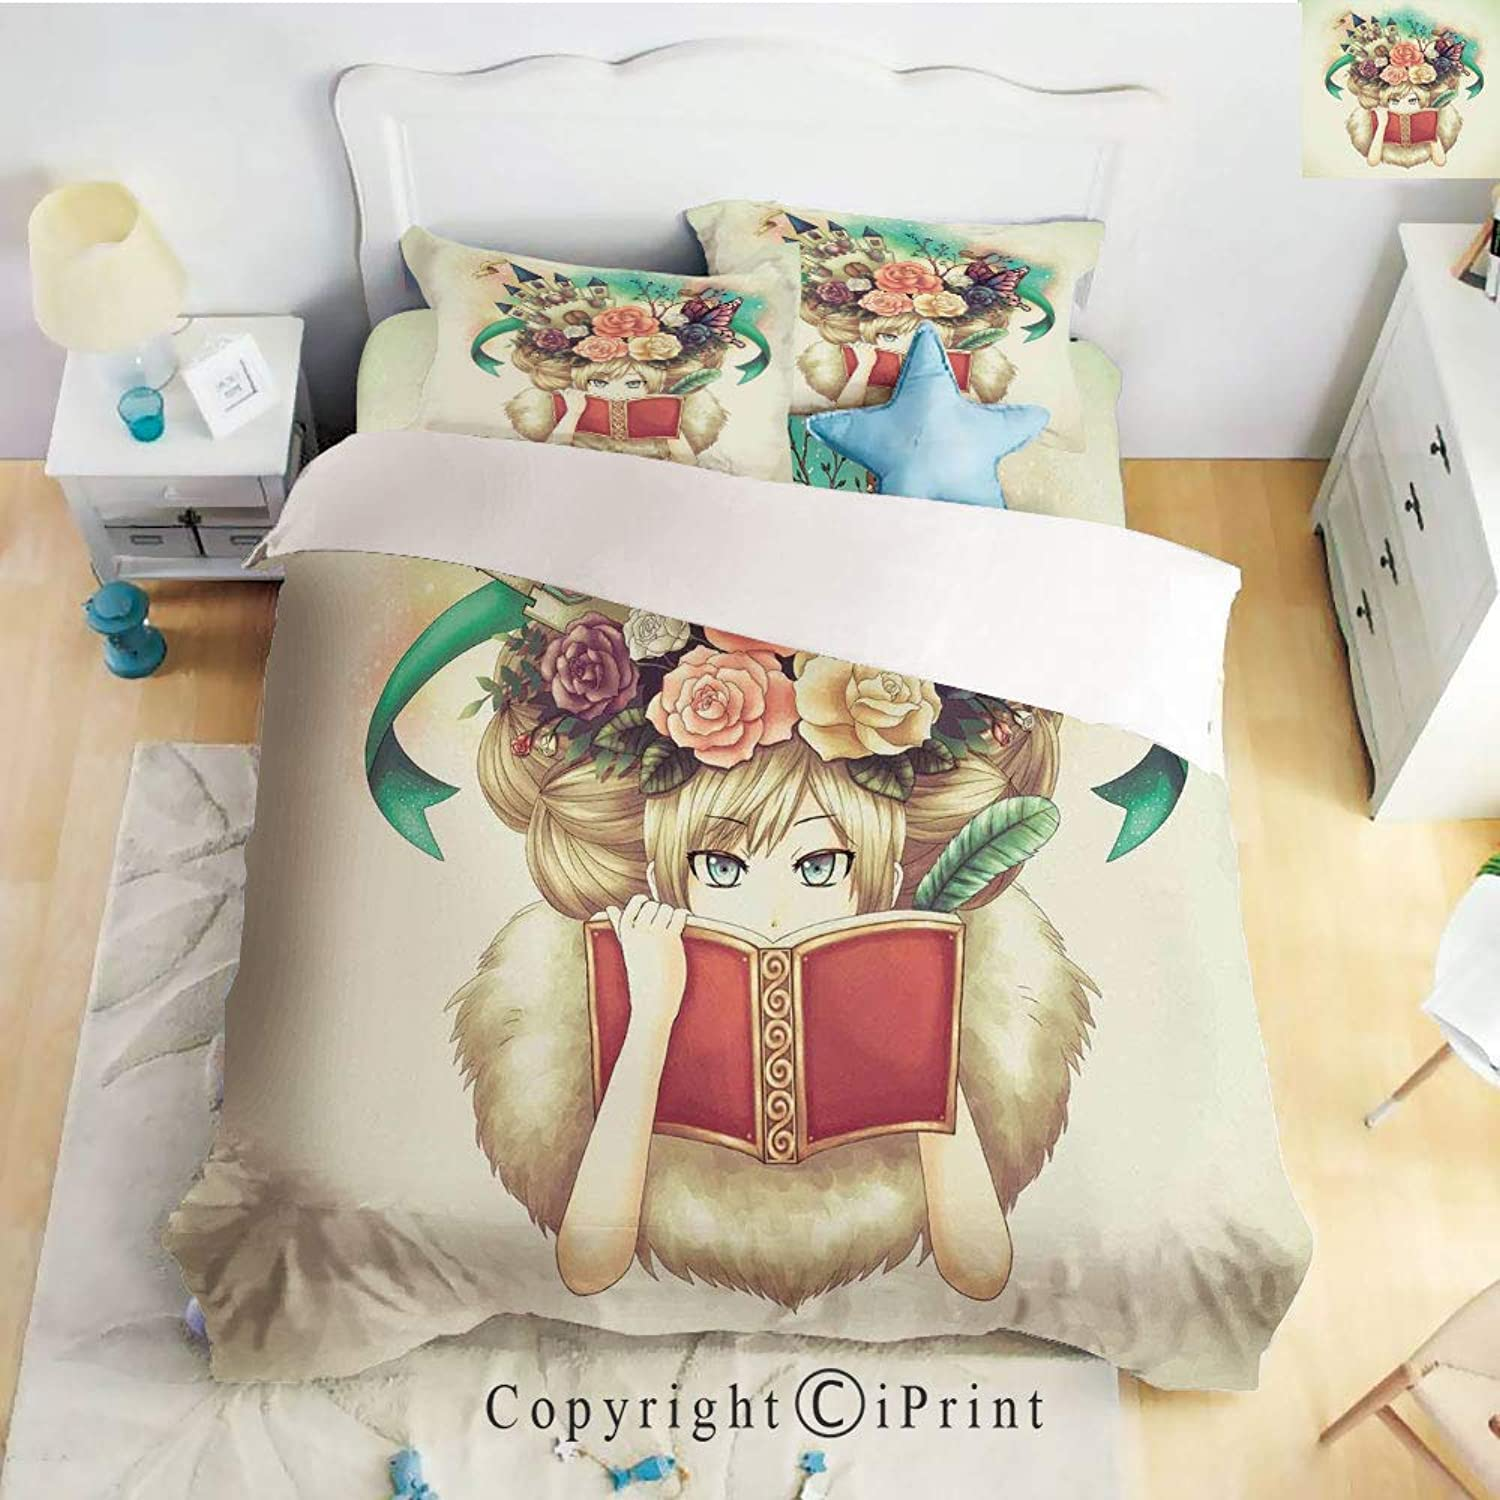 Homenon Luxury 4Piece Bed Sheet,Hide Zipper Closure,Creative Girl Reading with Medieval Castle Butterfly pinks Bird Dream World Print,Multicolor,King Size